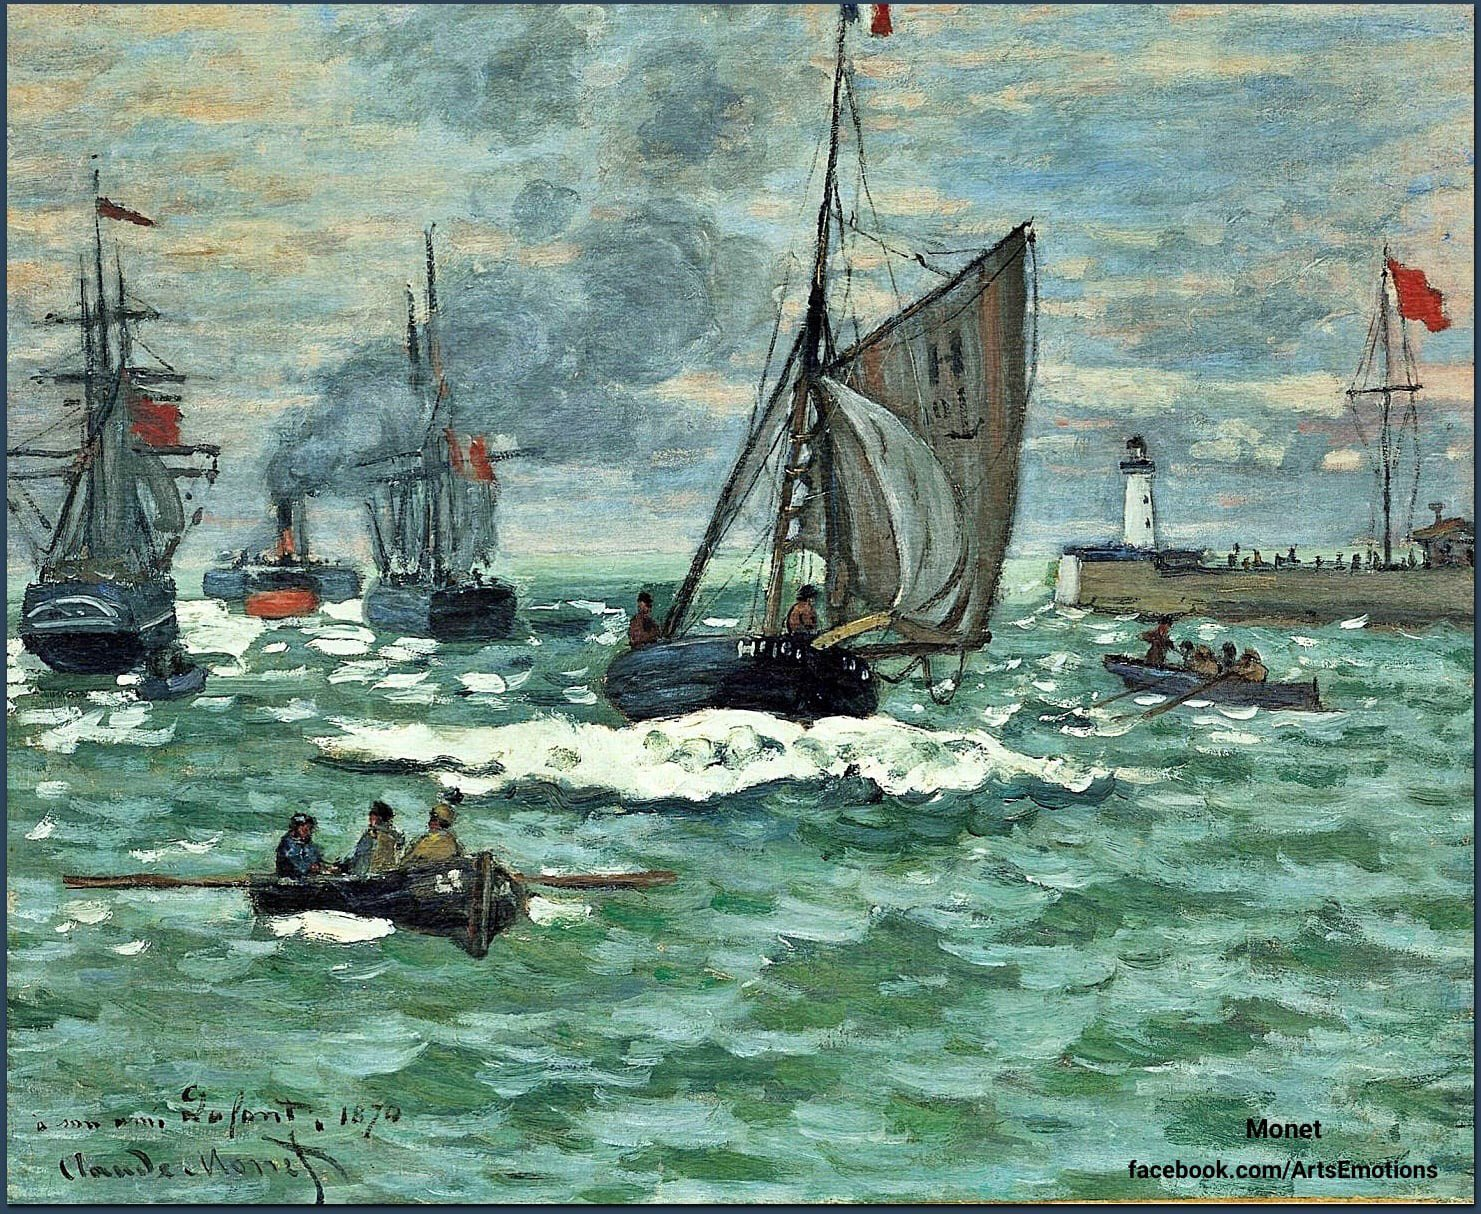 """""""Entrance to the Port of Honfleur"""".(1870) By Claude Monet.French impressionist Private Collection https://t.co/7wVDViyMM4"""